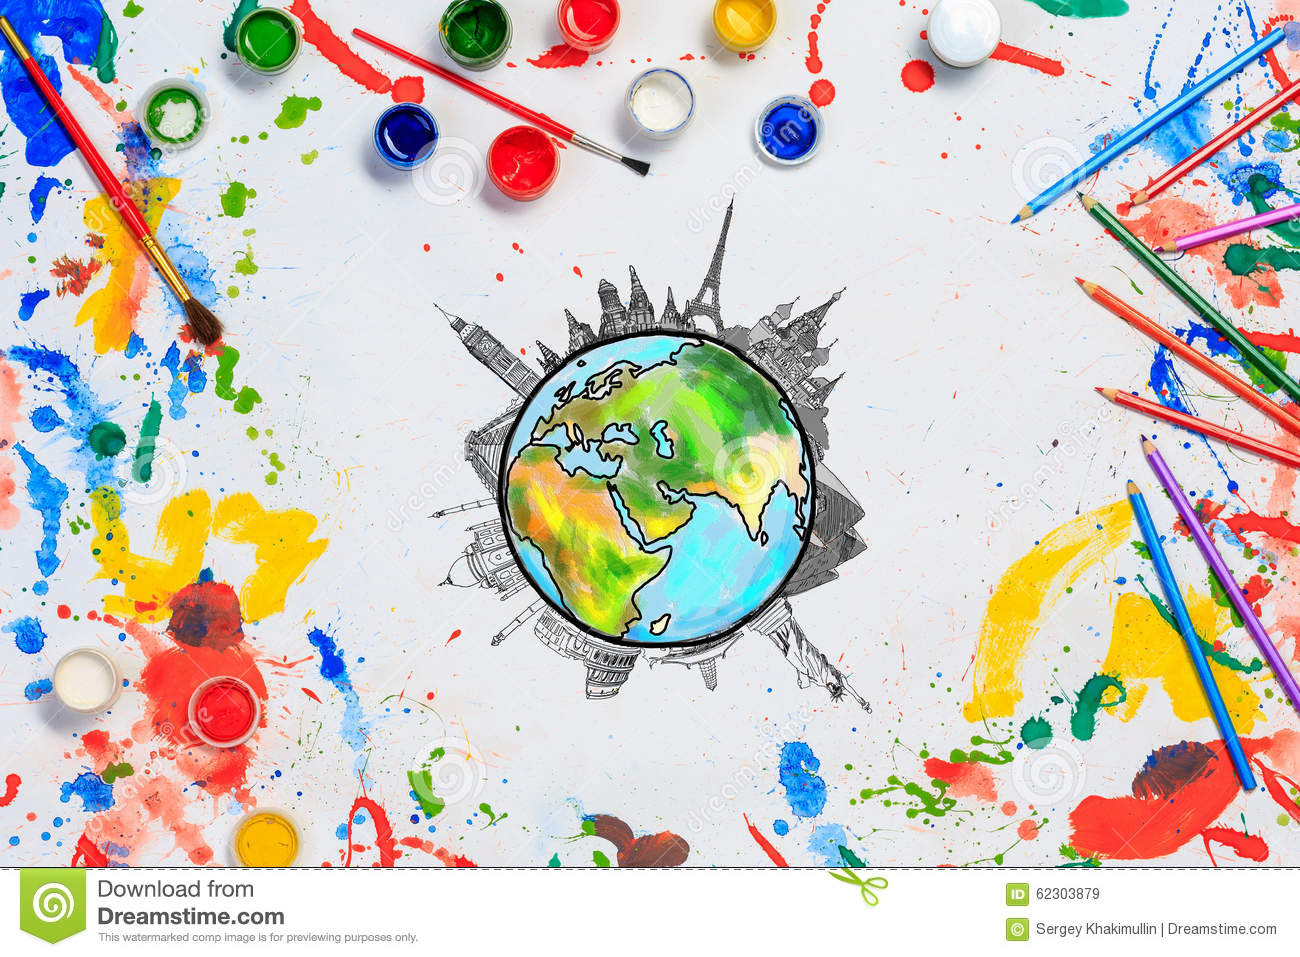 Colors of the world stock image. Image of create, brush ...